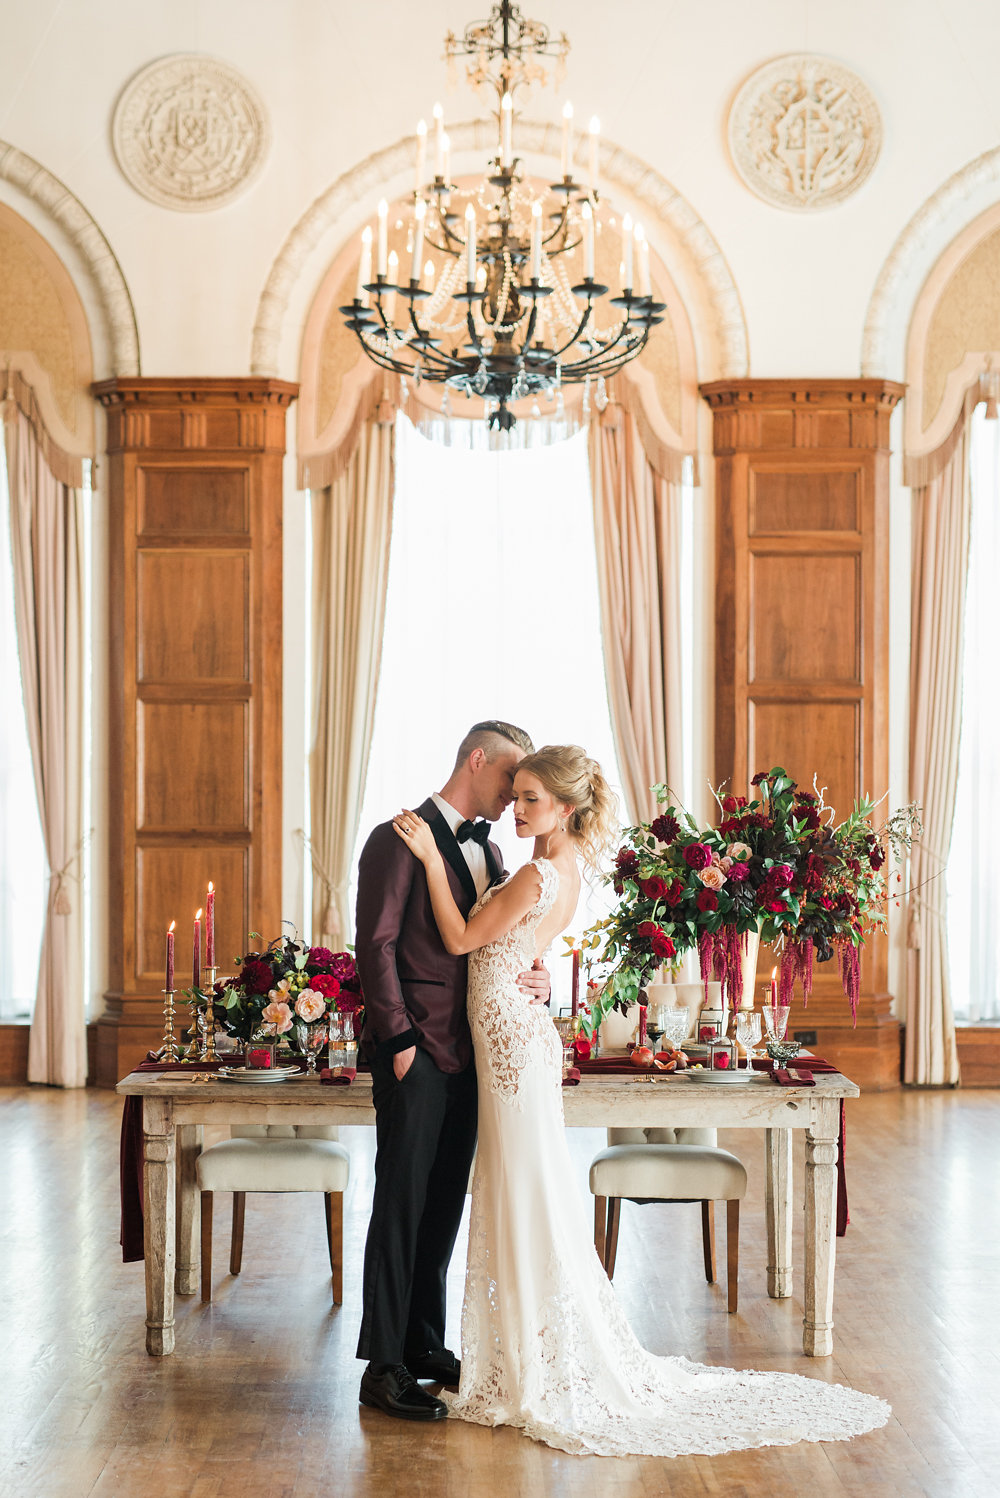 Modern Burgundy Russian Inspired Shoot // Anna Karenina // The MacArthur LA // Anya Kernes Photography // Lucky Day Events Co.